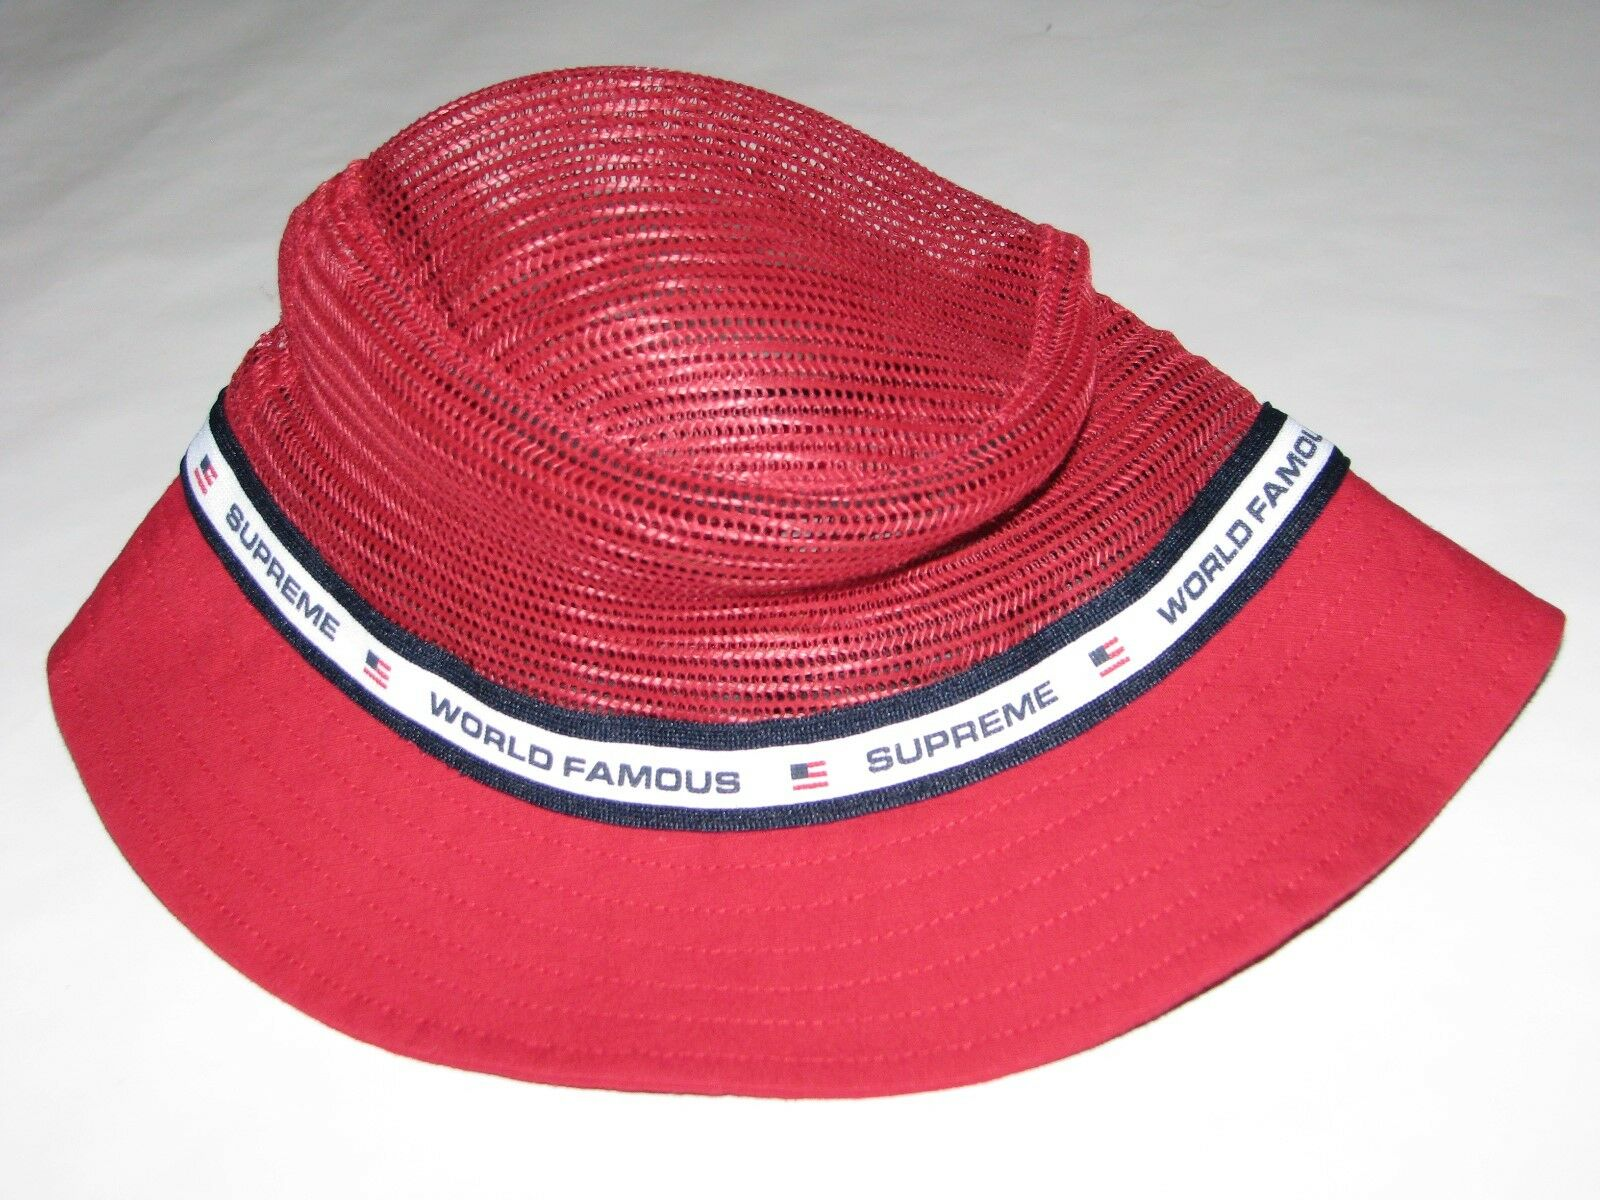 Supreme Mesh Crown Crusher Red Bucket Hat Cap Small   Medium S s ... a1cca8a9d95a